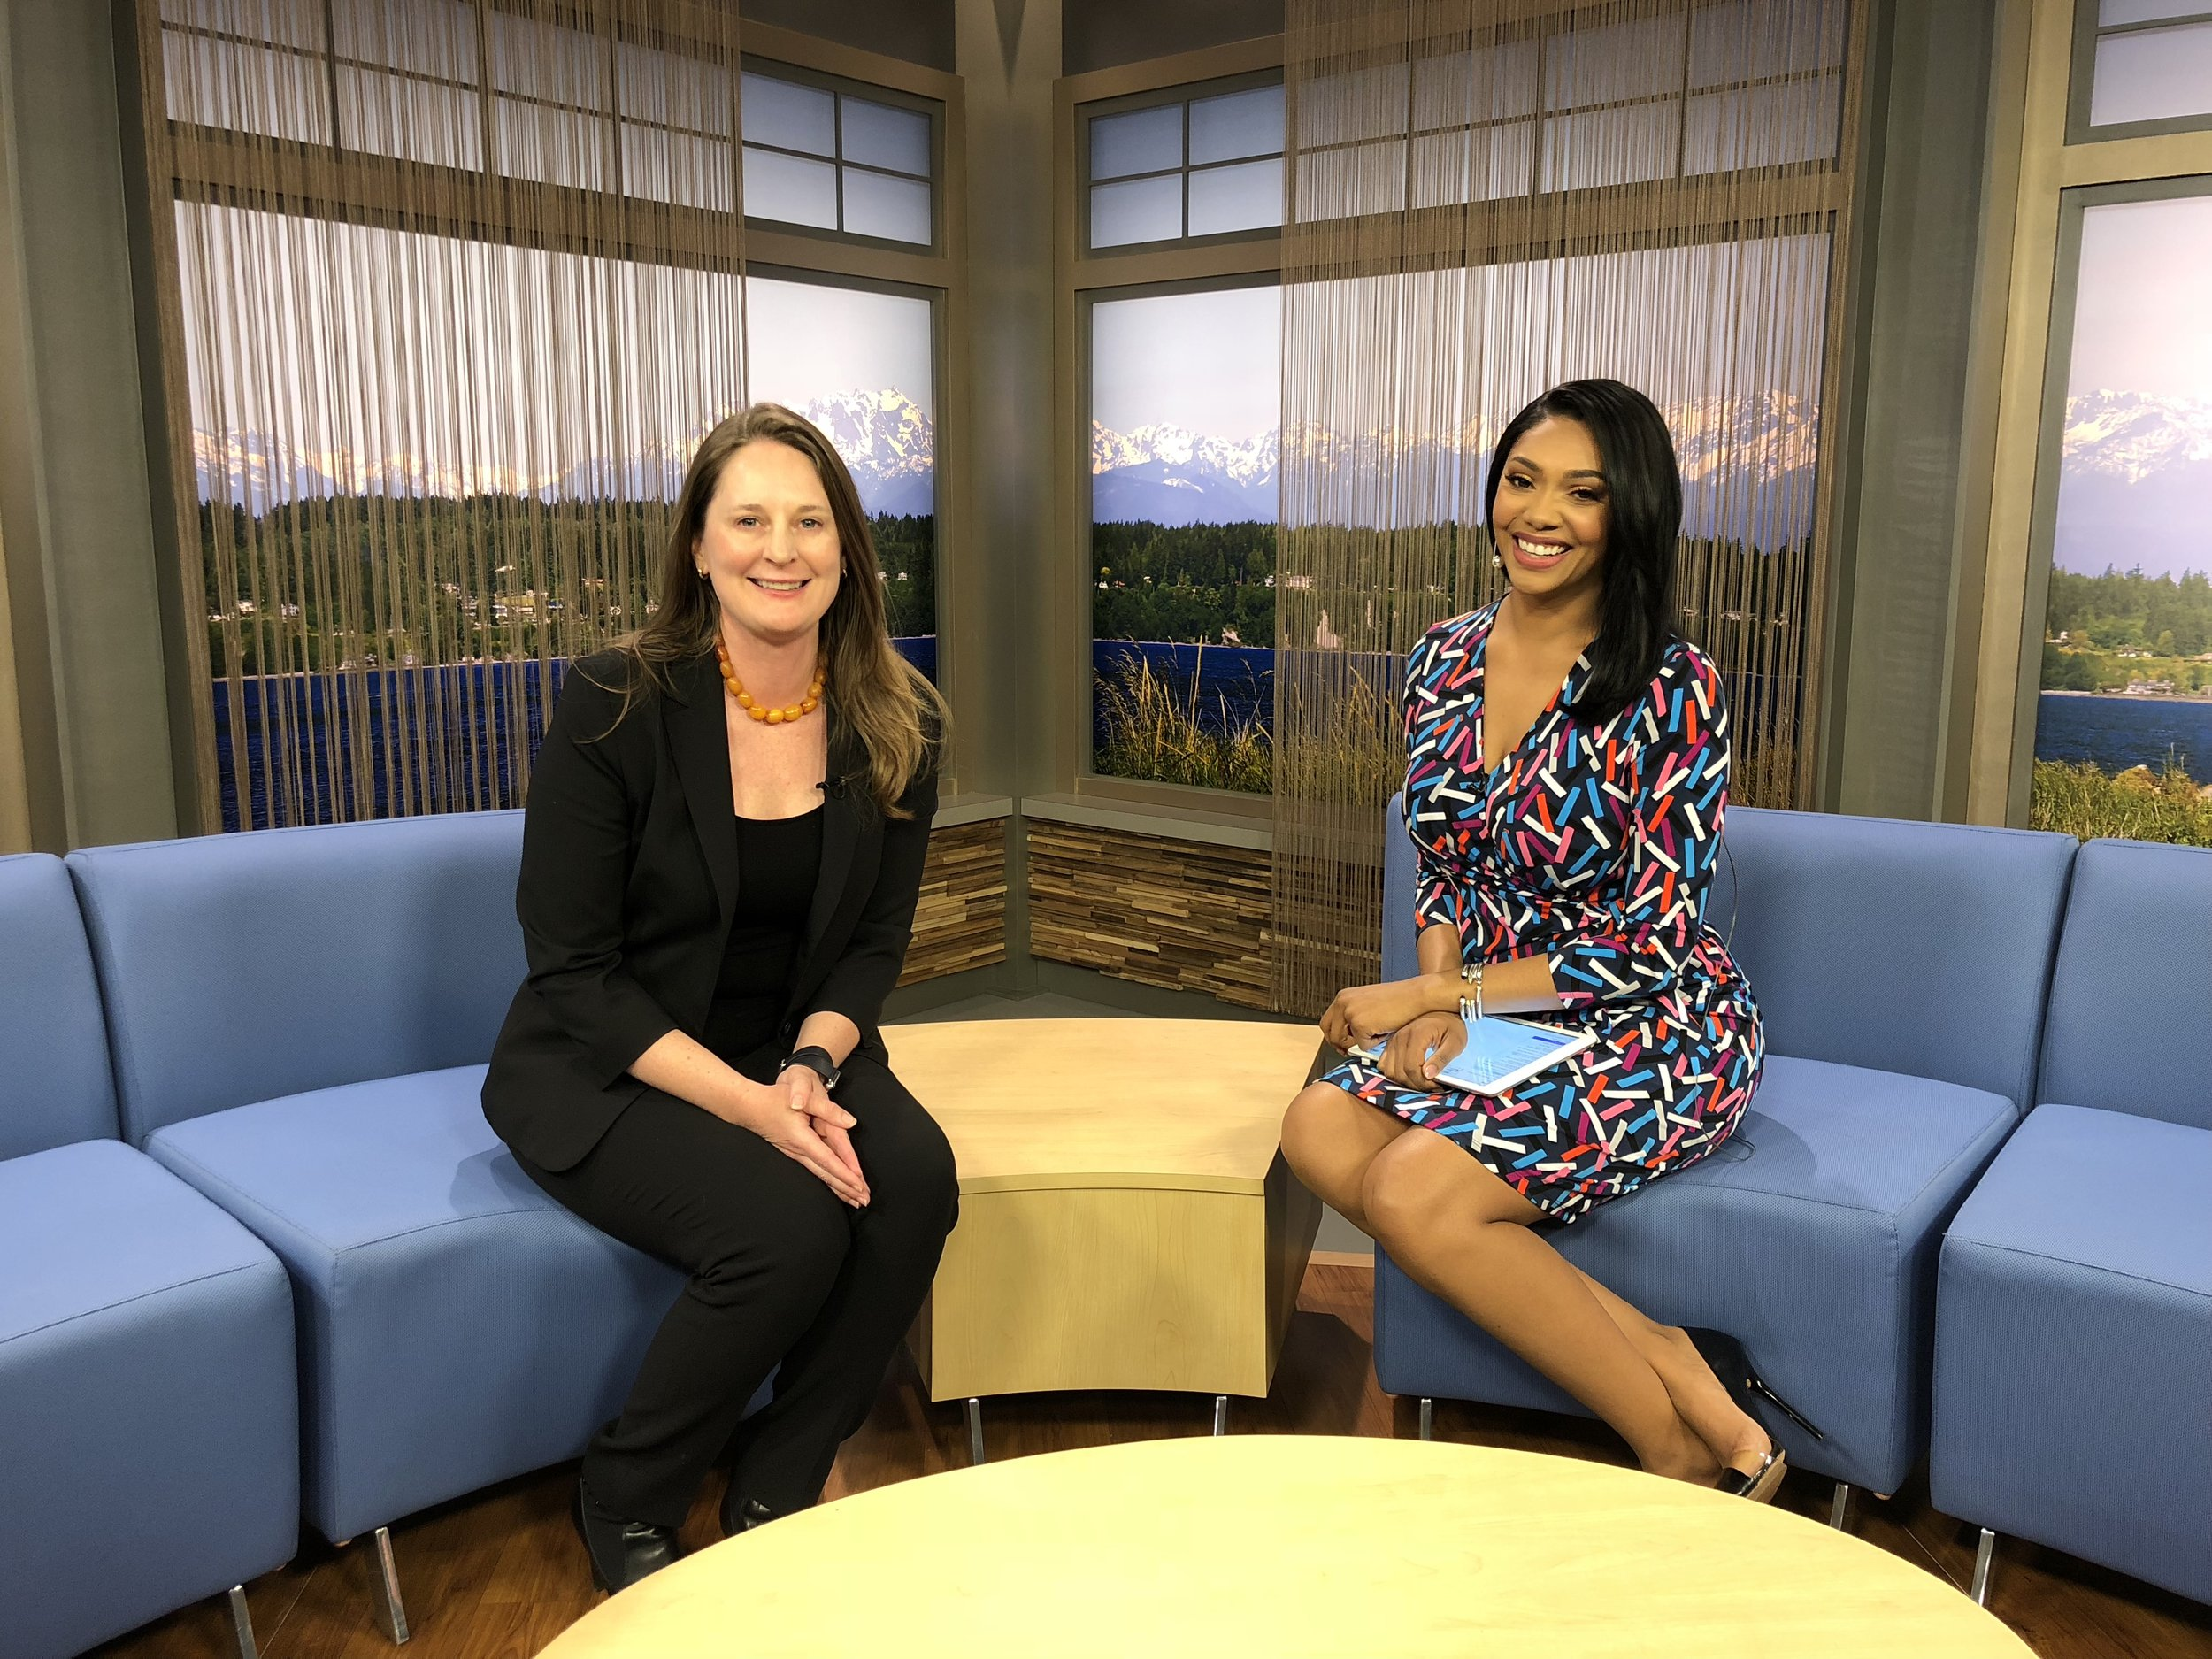 With Alexandra Lewis on Q13 News